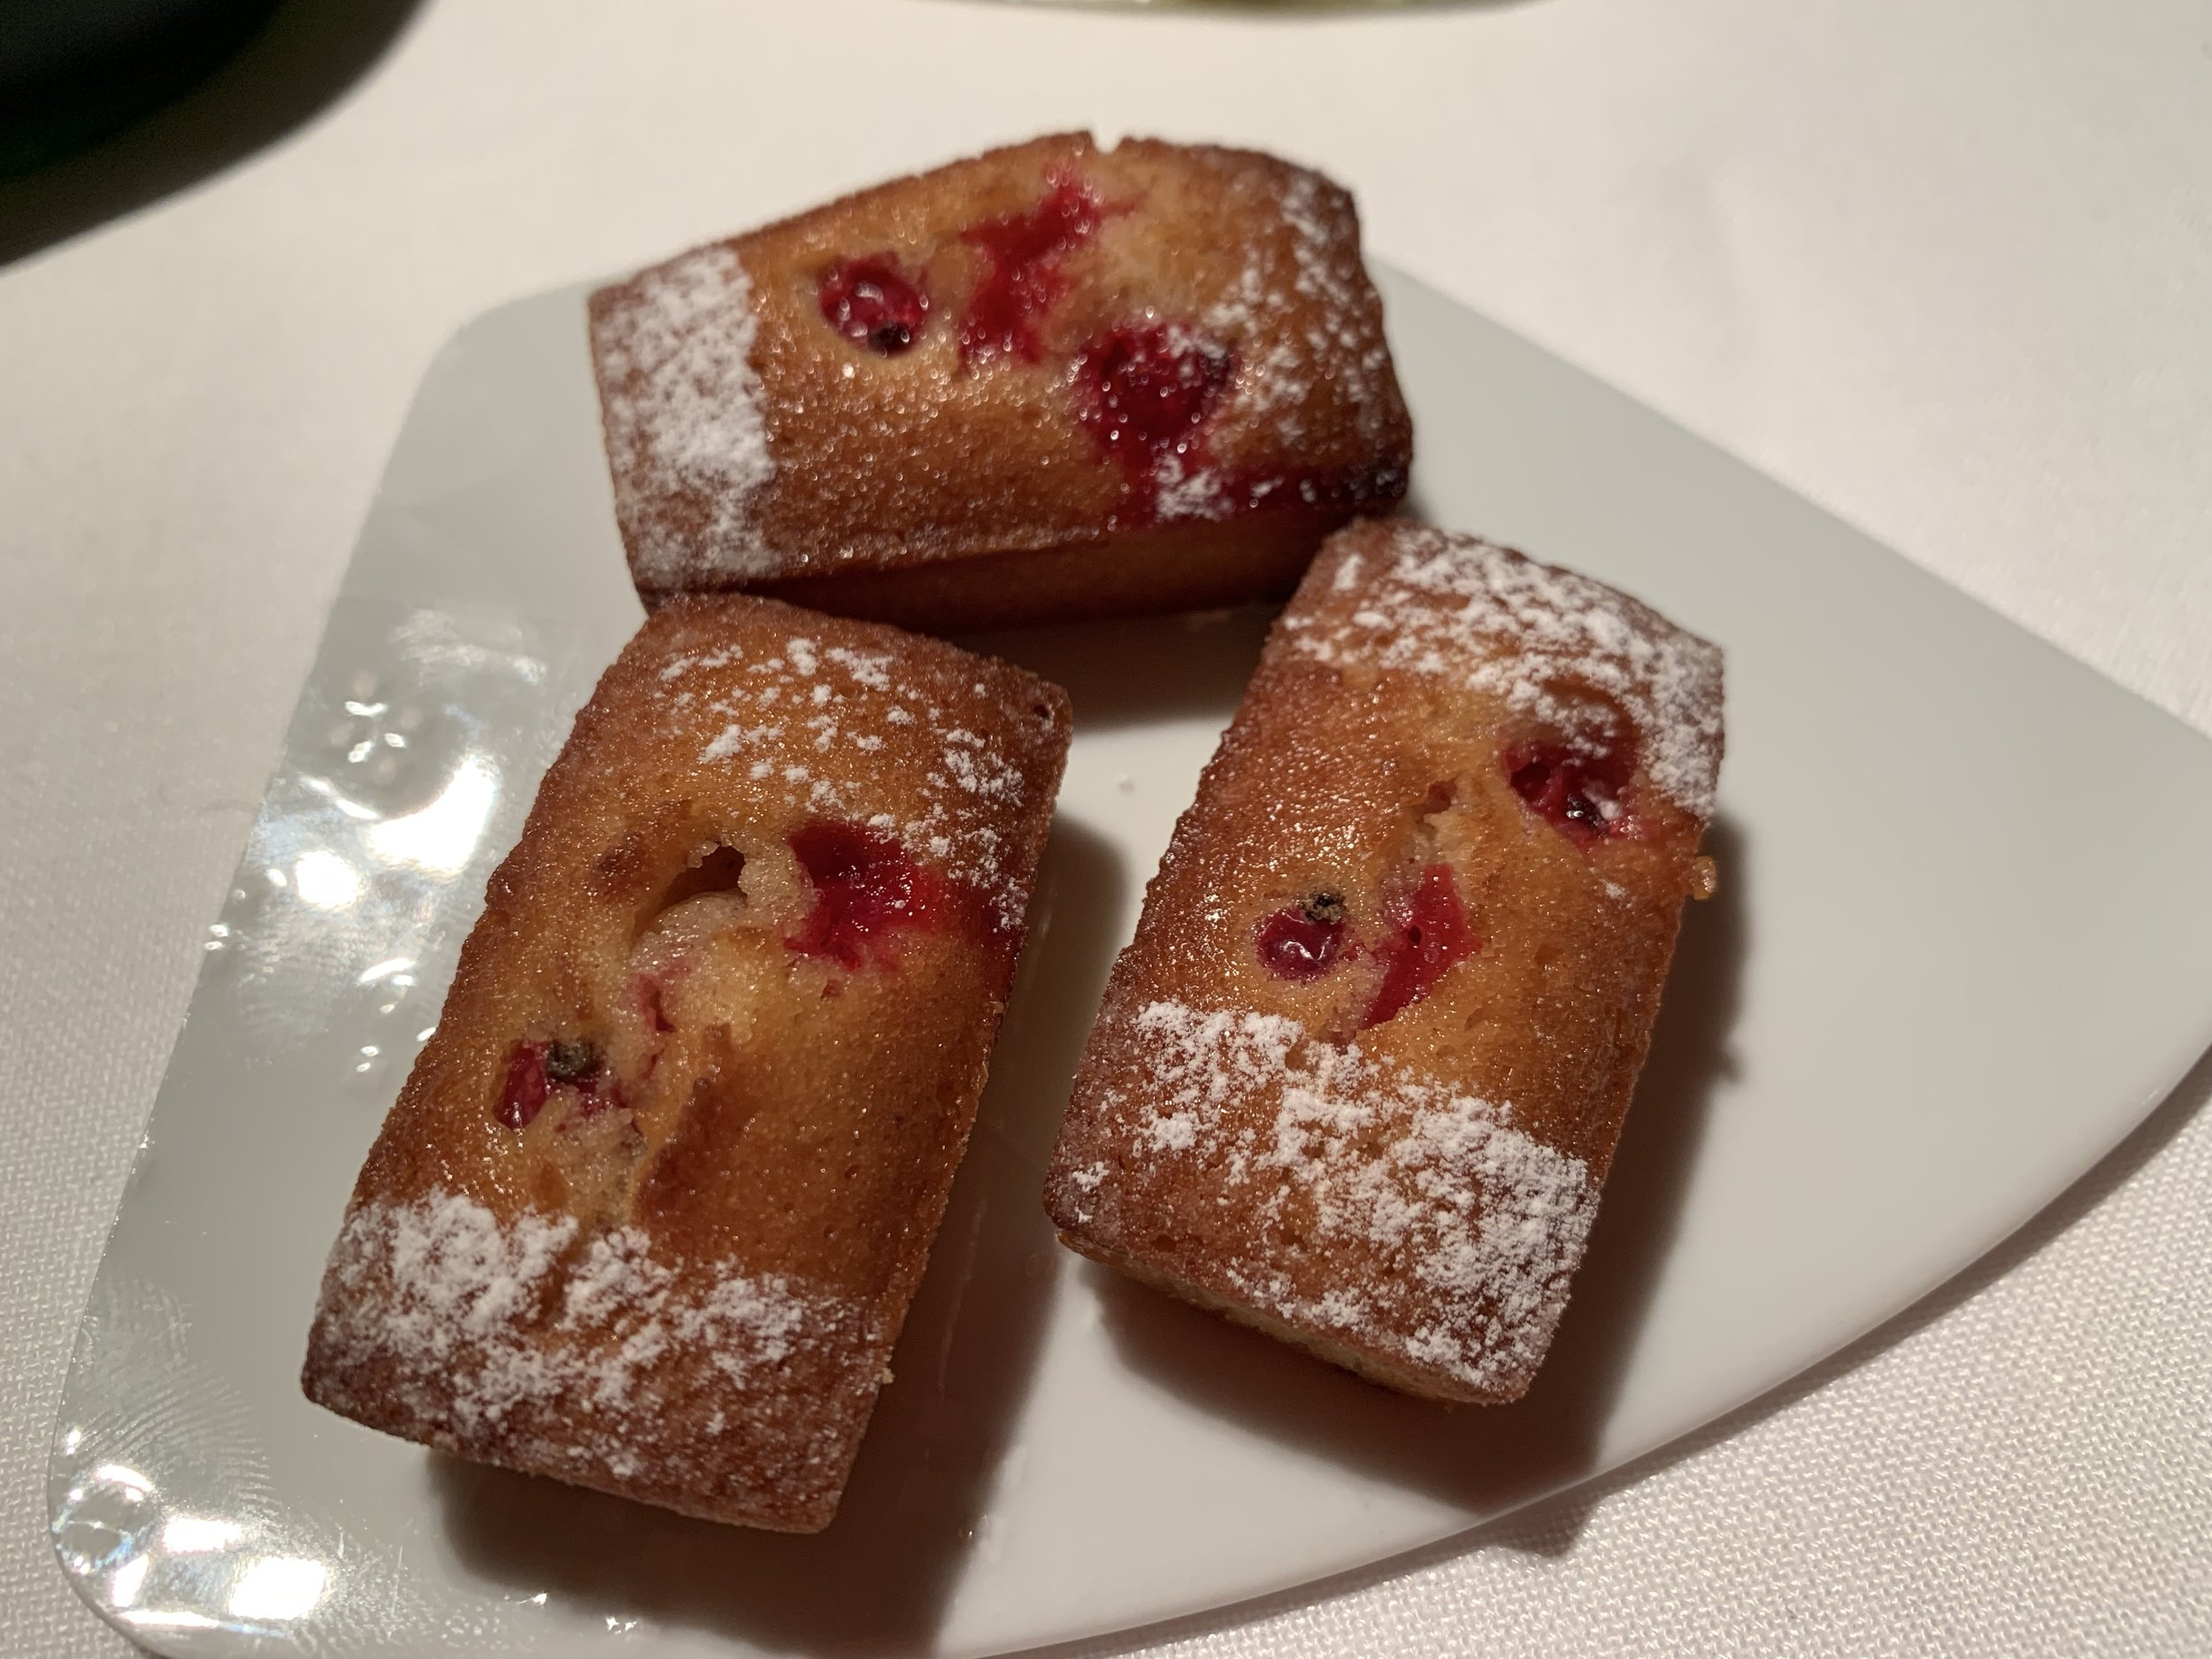 Cranberry pastries